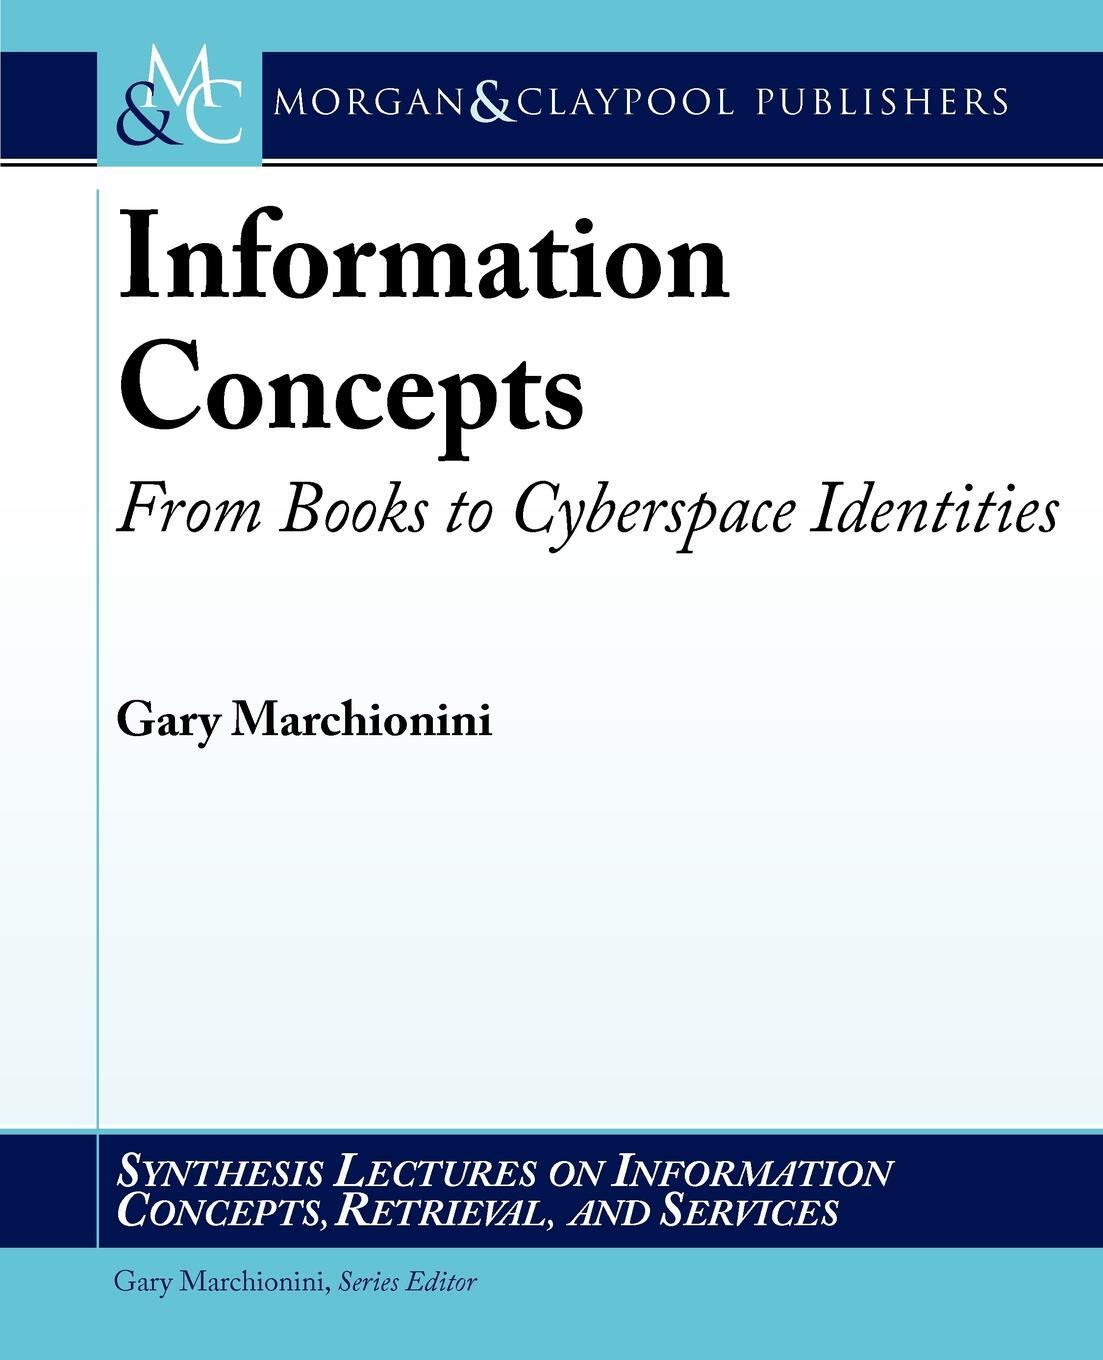 Information Concepts. From Books to Cyberspace Identities. Gary Marchionini